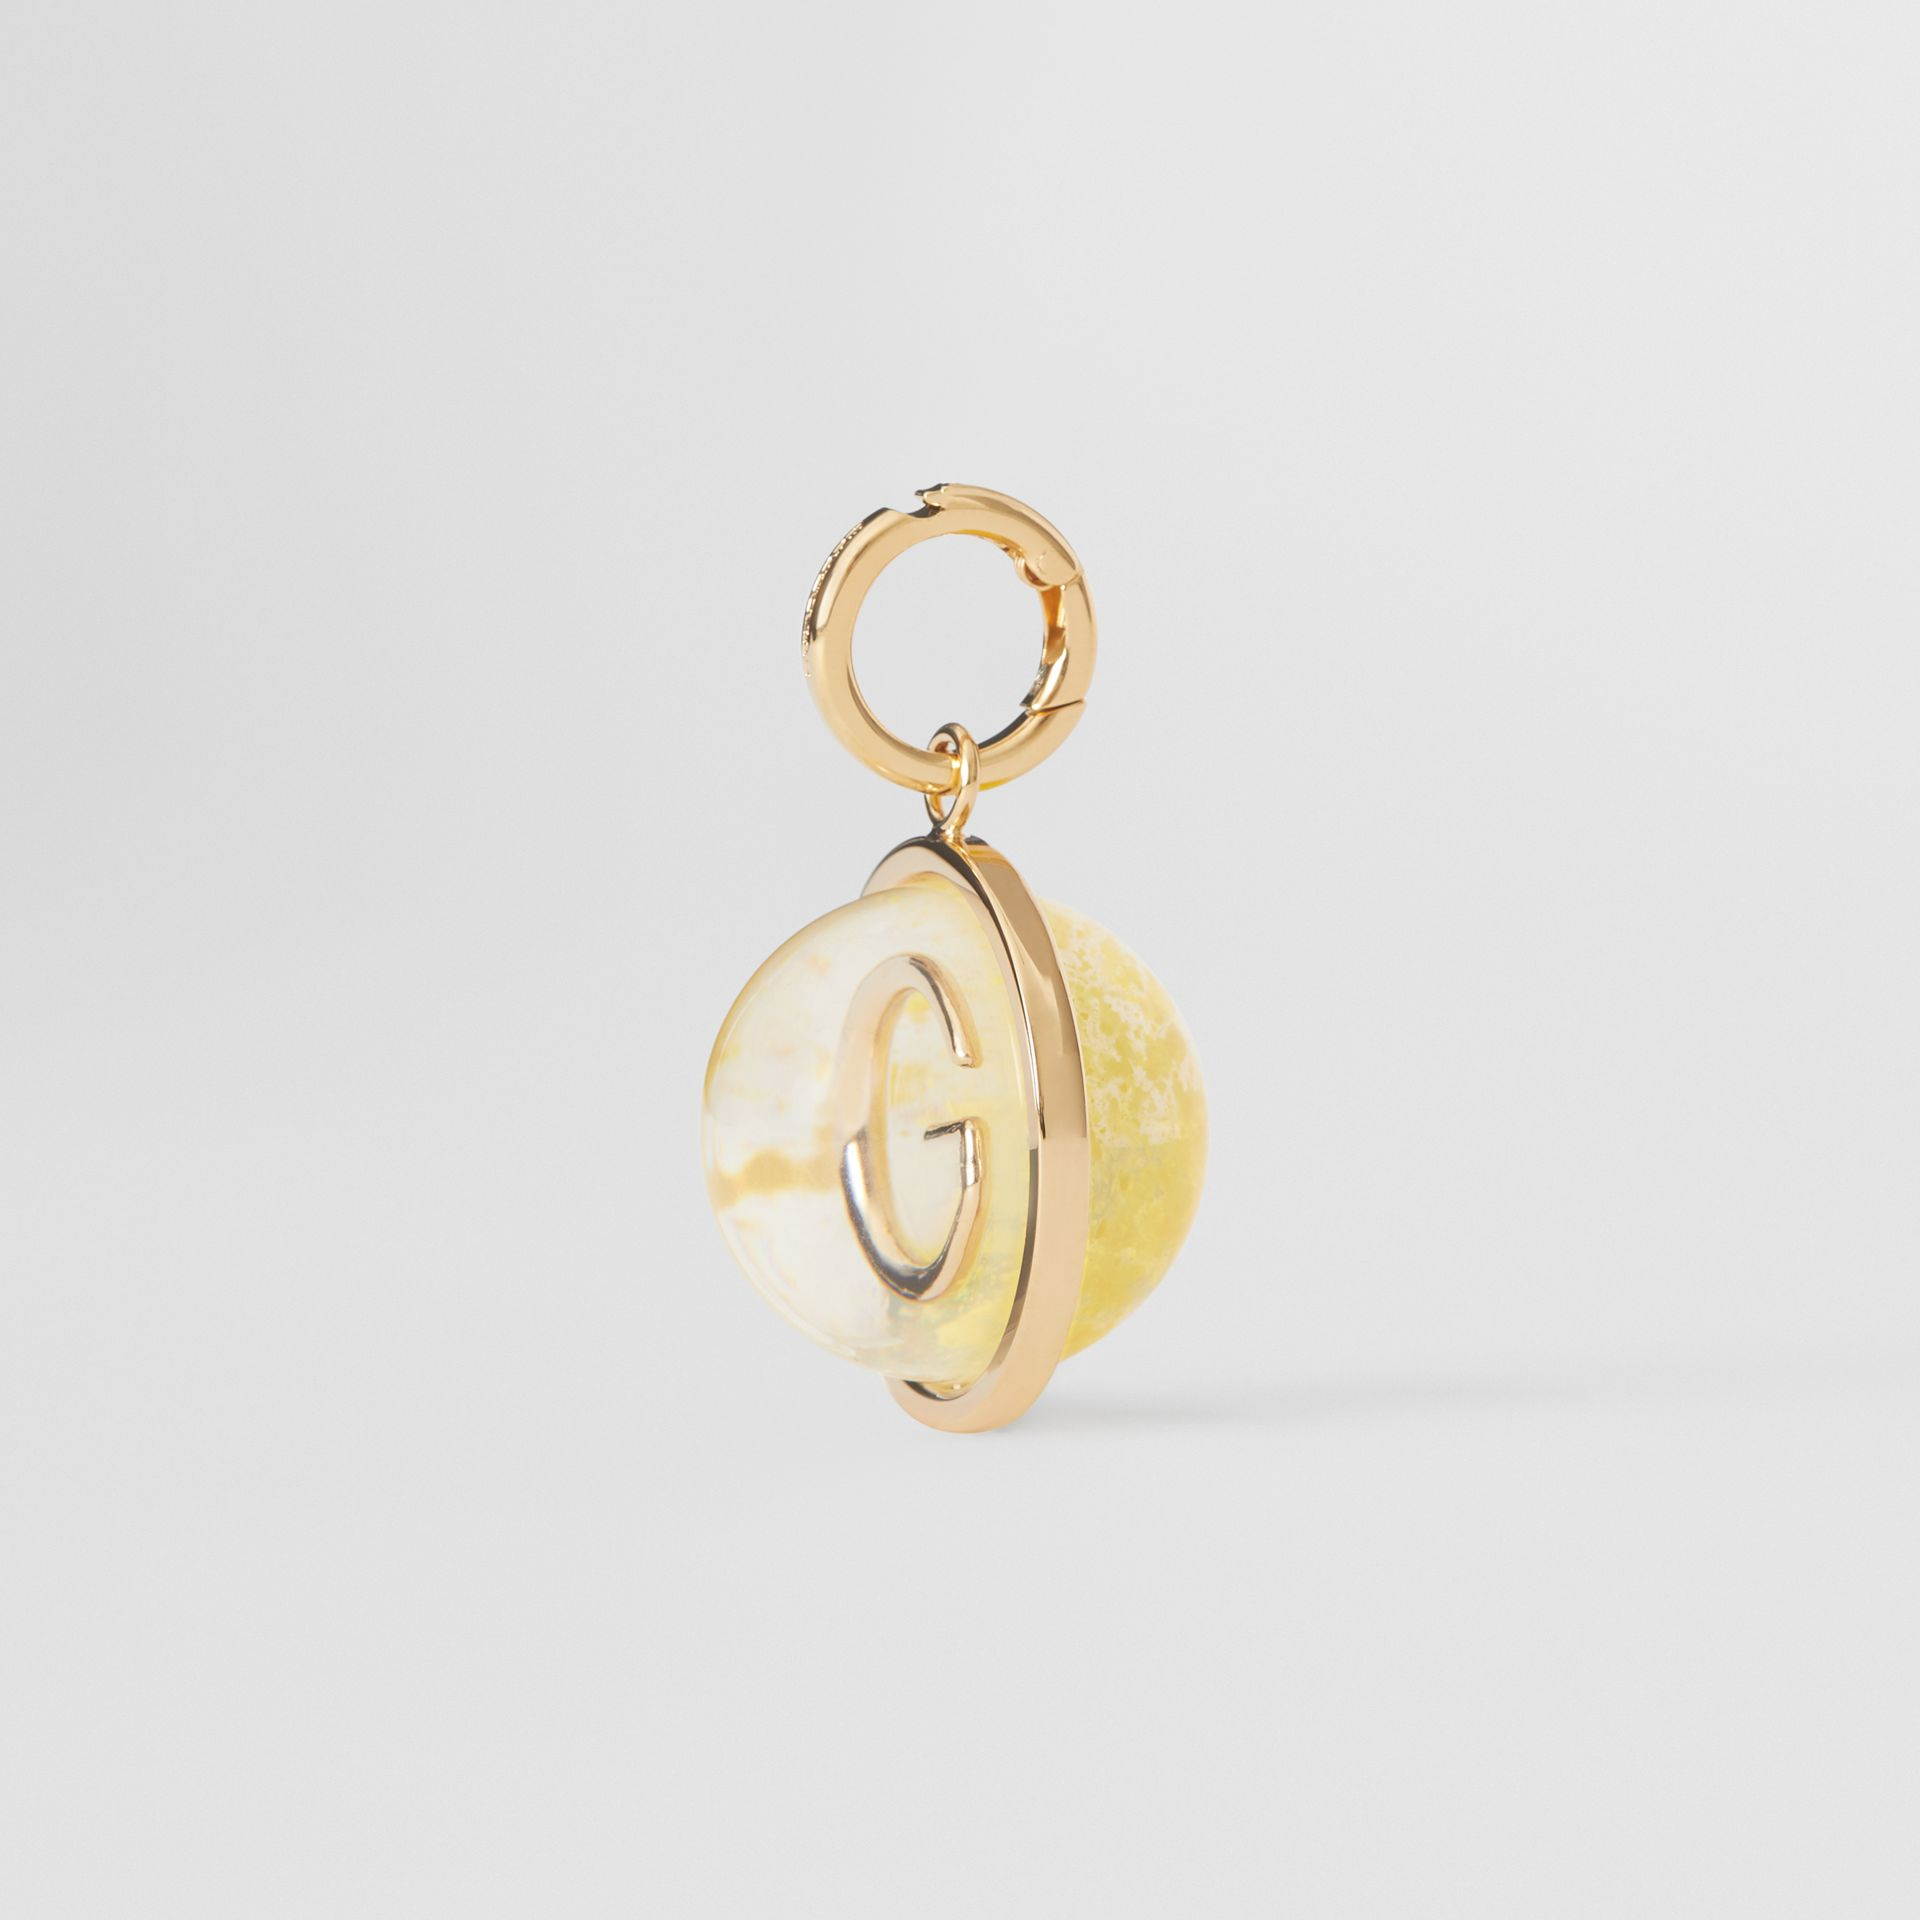 Marbled Resin 'G' Alphabet Charm in Gold/mimosa - Women | Burberry United Kingdom - gallery image 4